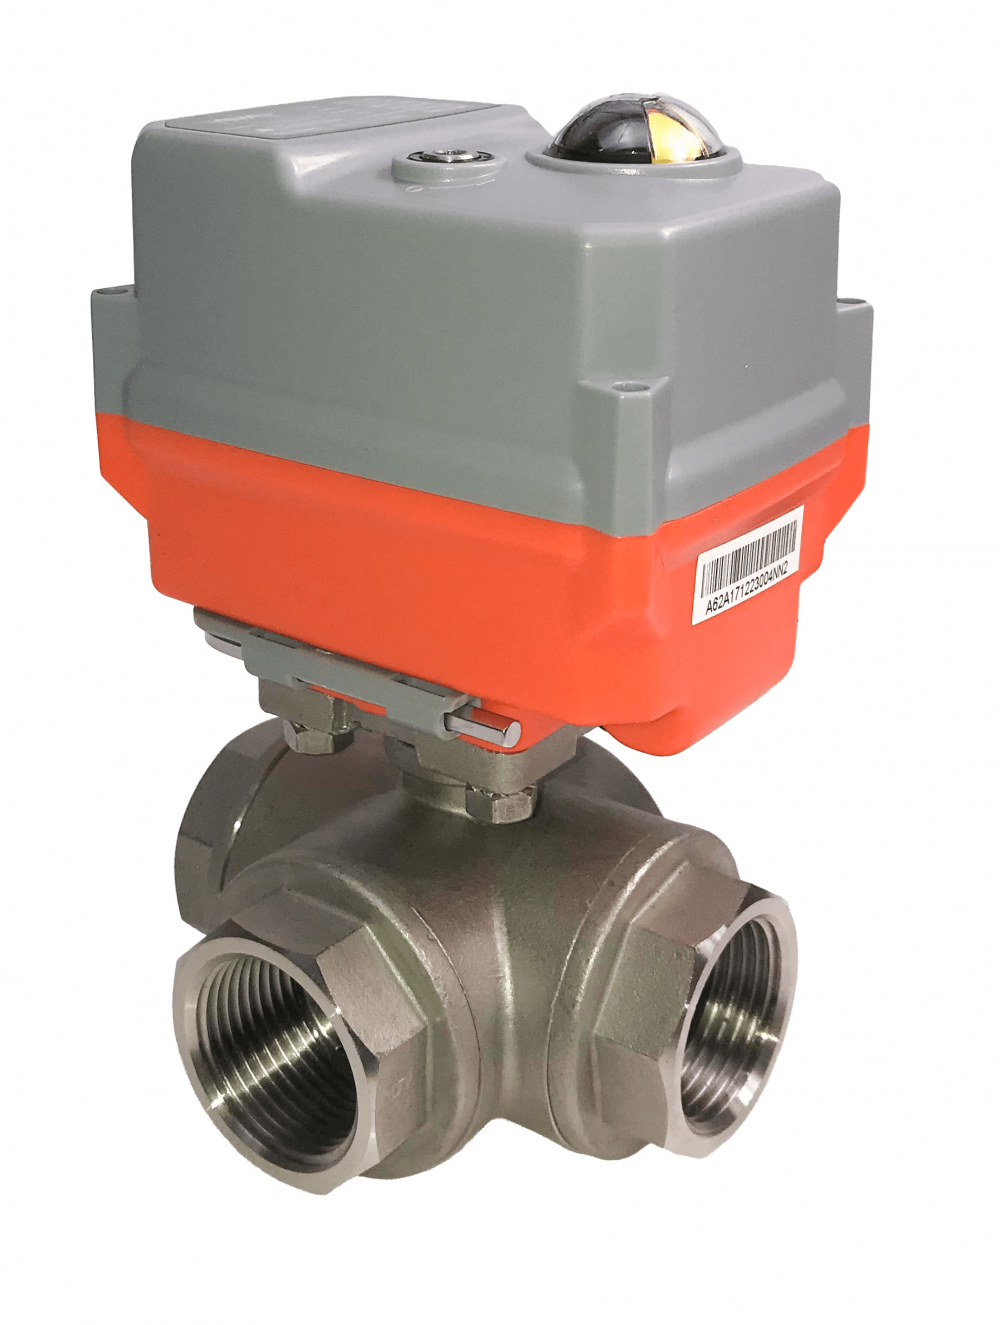 On-Off GE Economy 3 Way Stainless steel ball valves with AVA Basic electric actuator